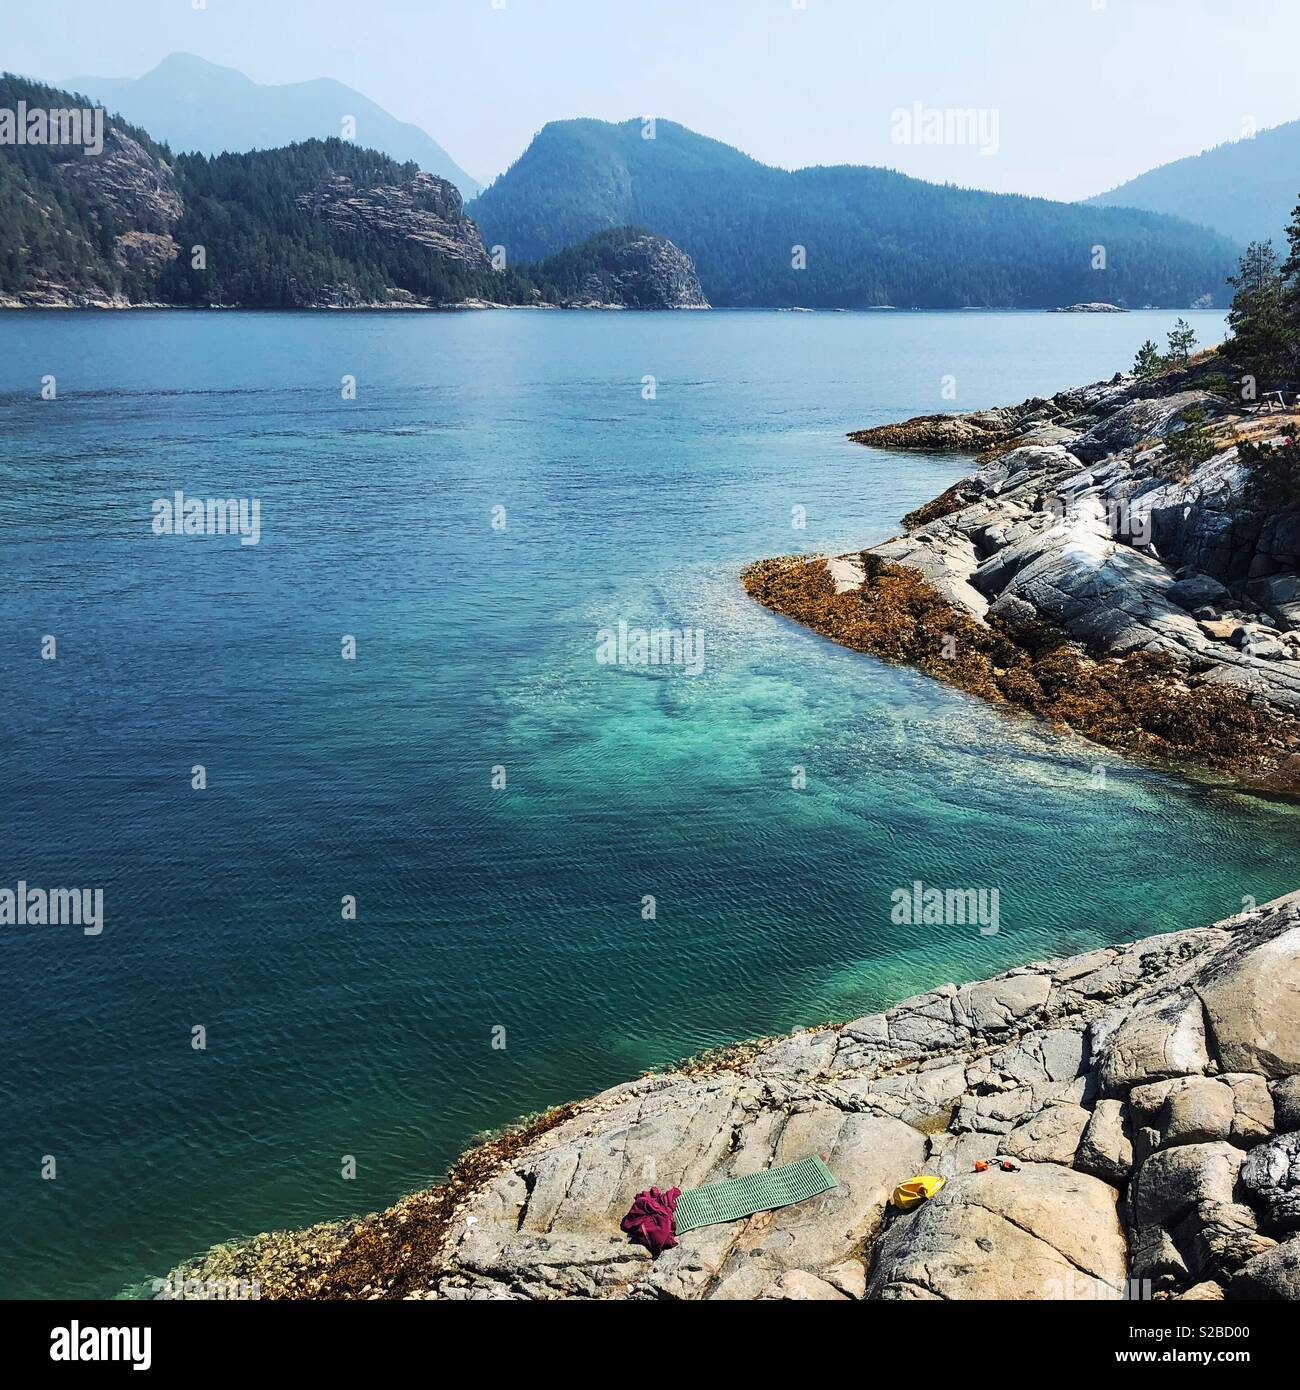 Warm turquoise water of Desolation Sound - Stock Image